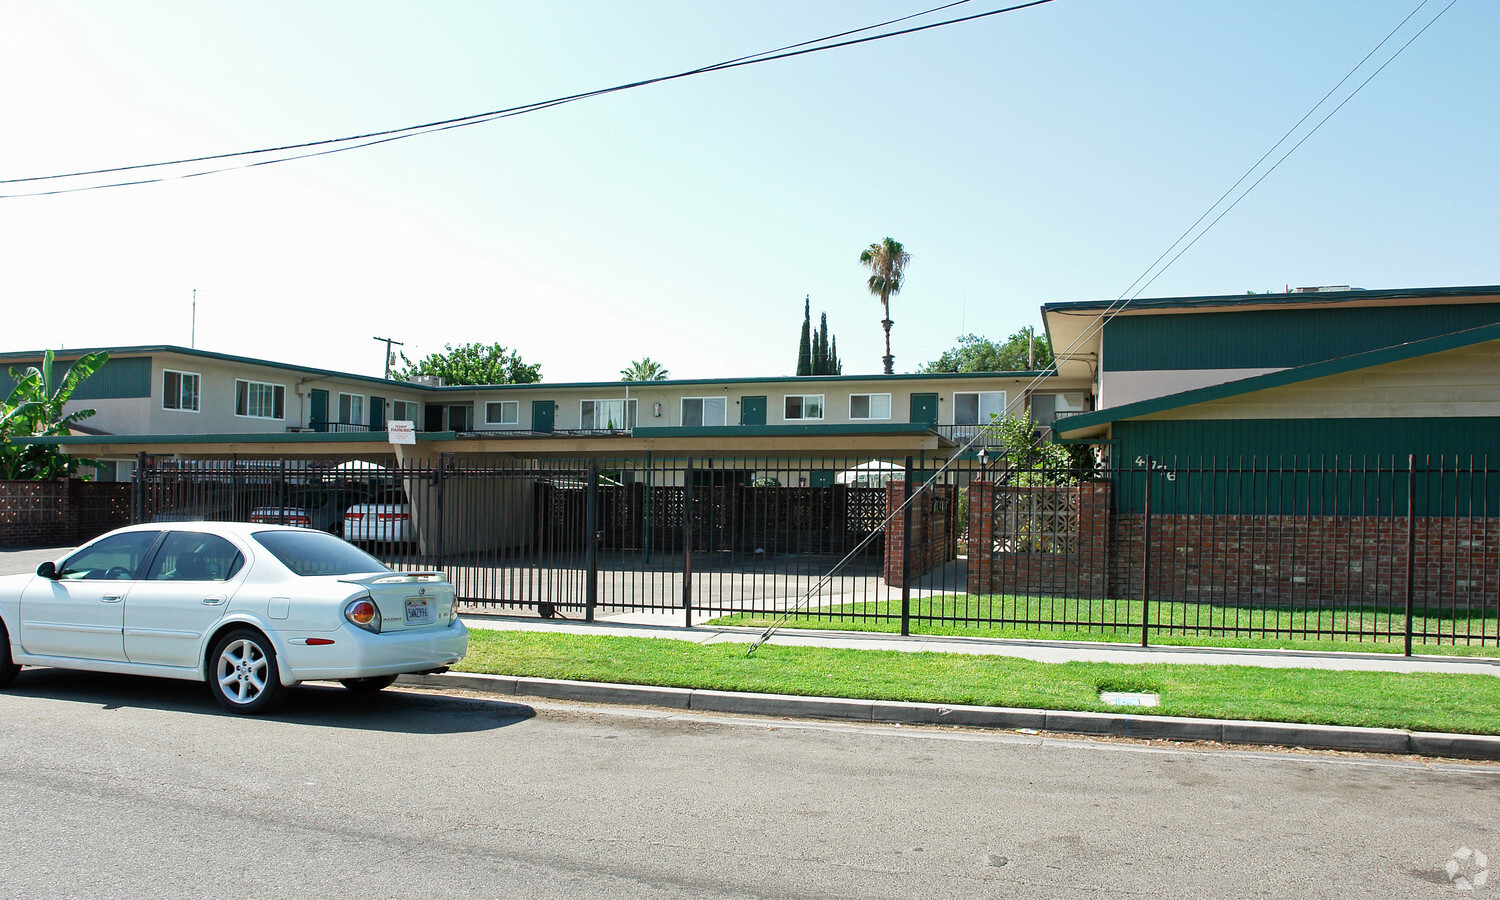 4776 E Clay Ave Fresno CA 93702 Apartments Property